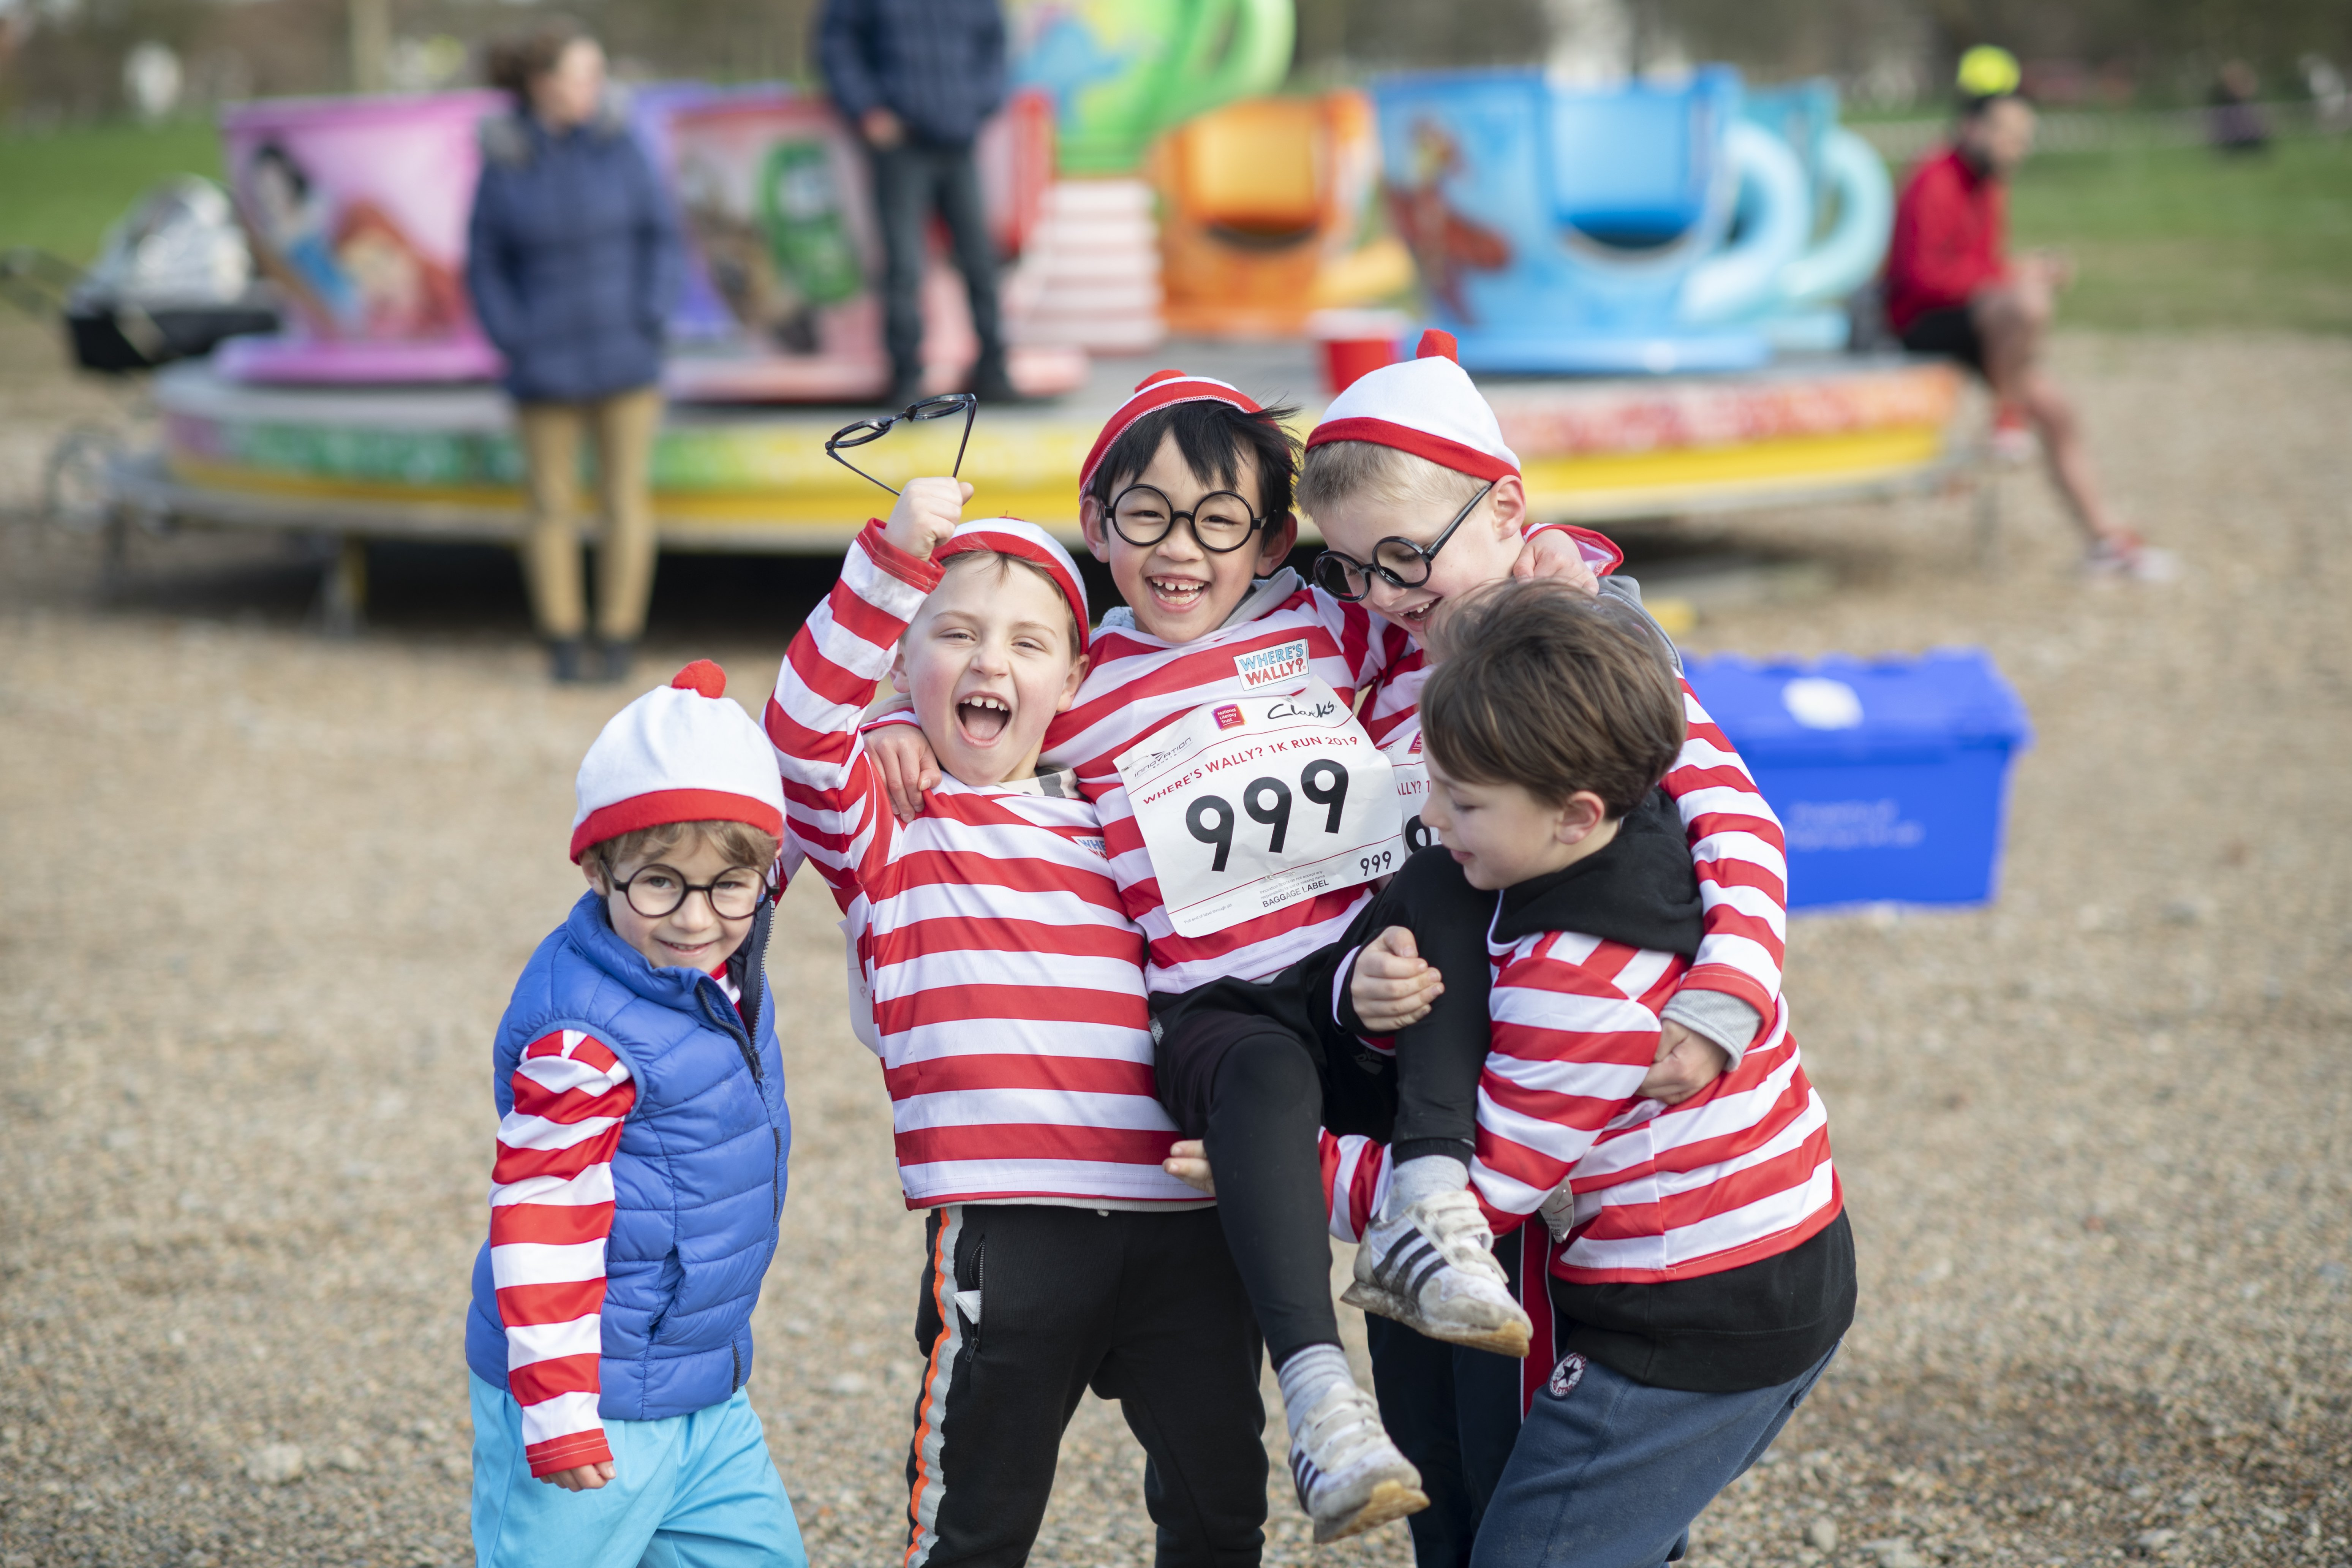 Peterborough Where's Wally fun run